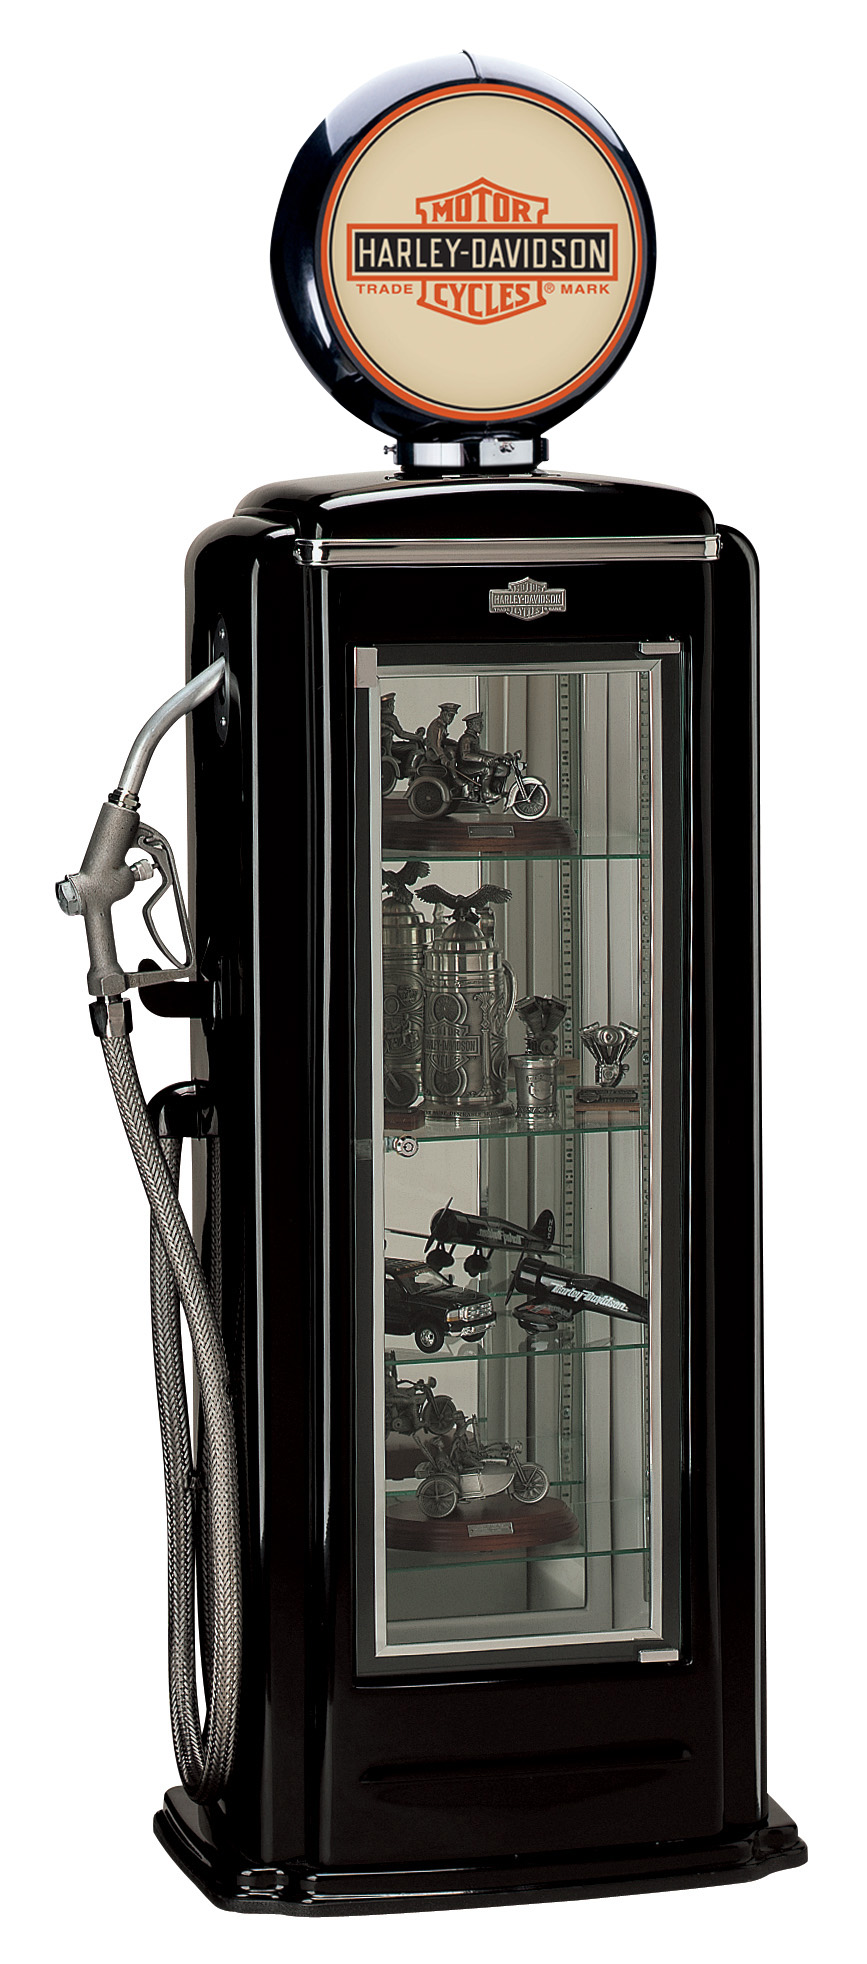 Harley-Davidson Premium Gas Pump Display Case (Black) HDL-10220A